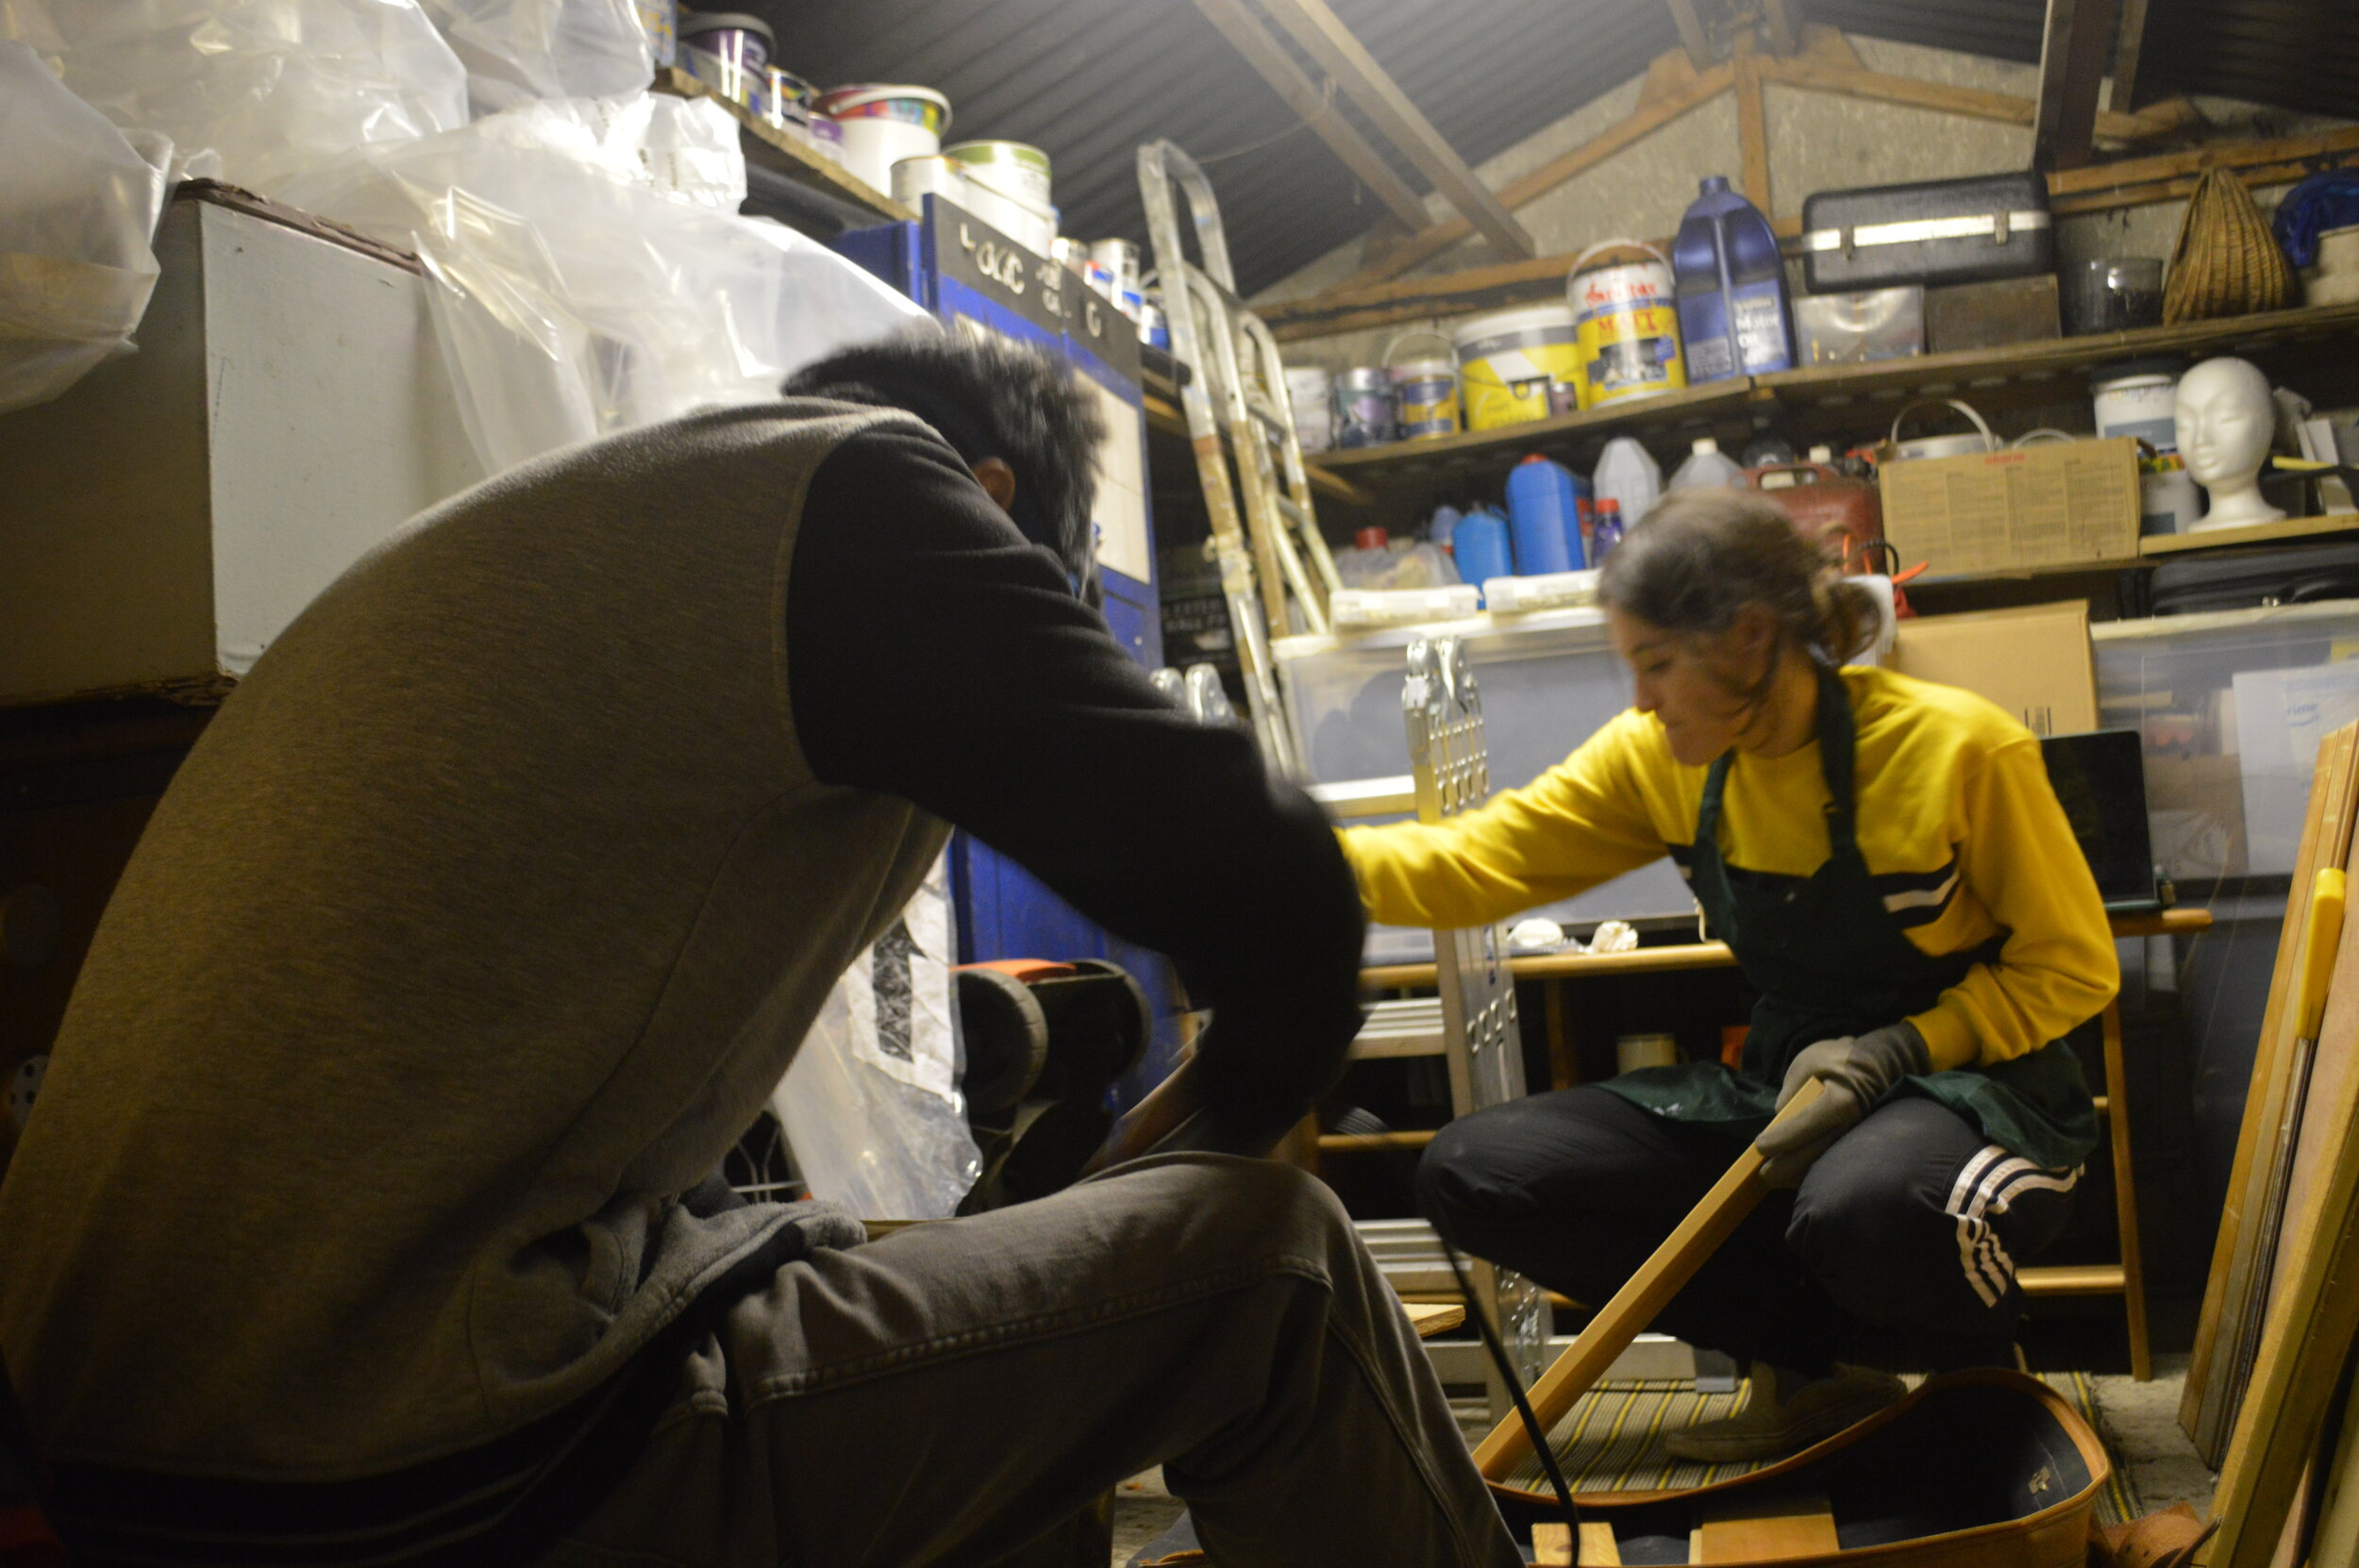 Sophia and Minh in the shed working on the wooden frame. Minhs back is to the camera